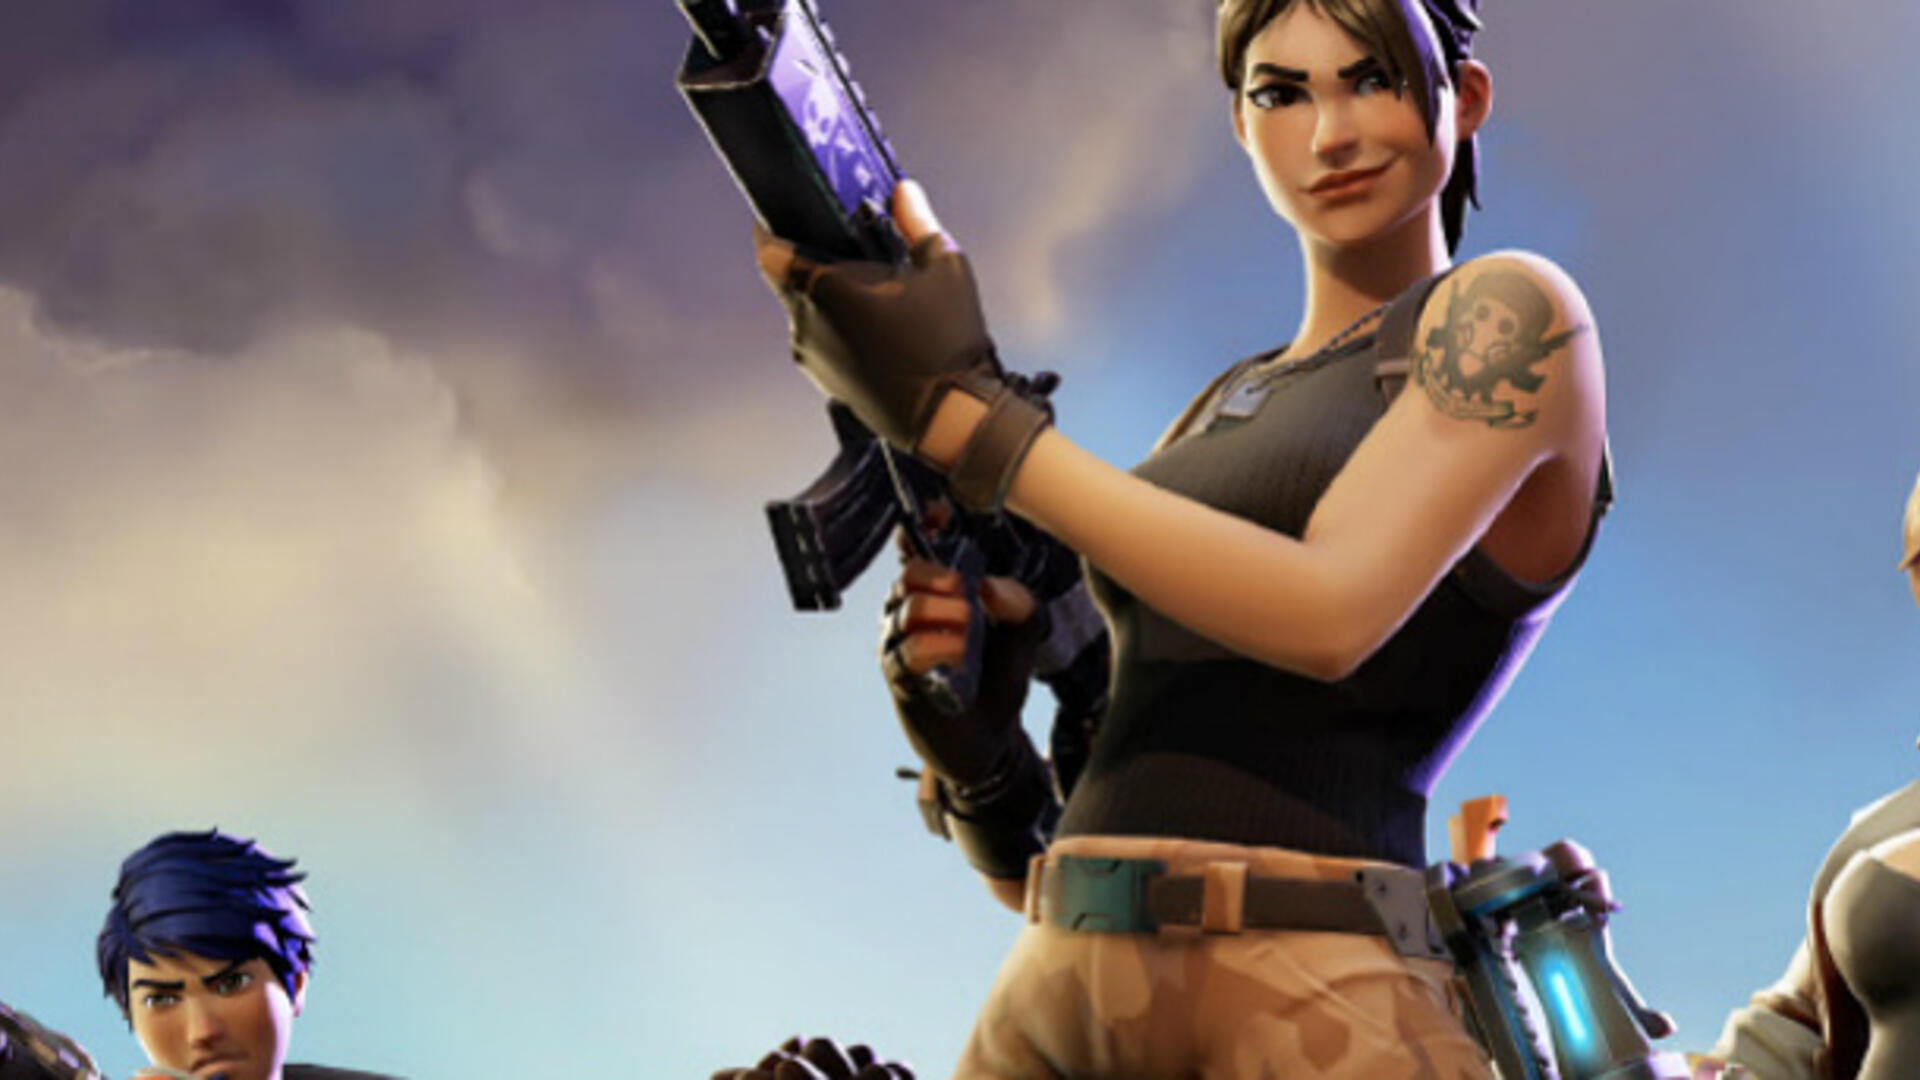 Petitions to get Fortnite Banned are on the Rise